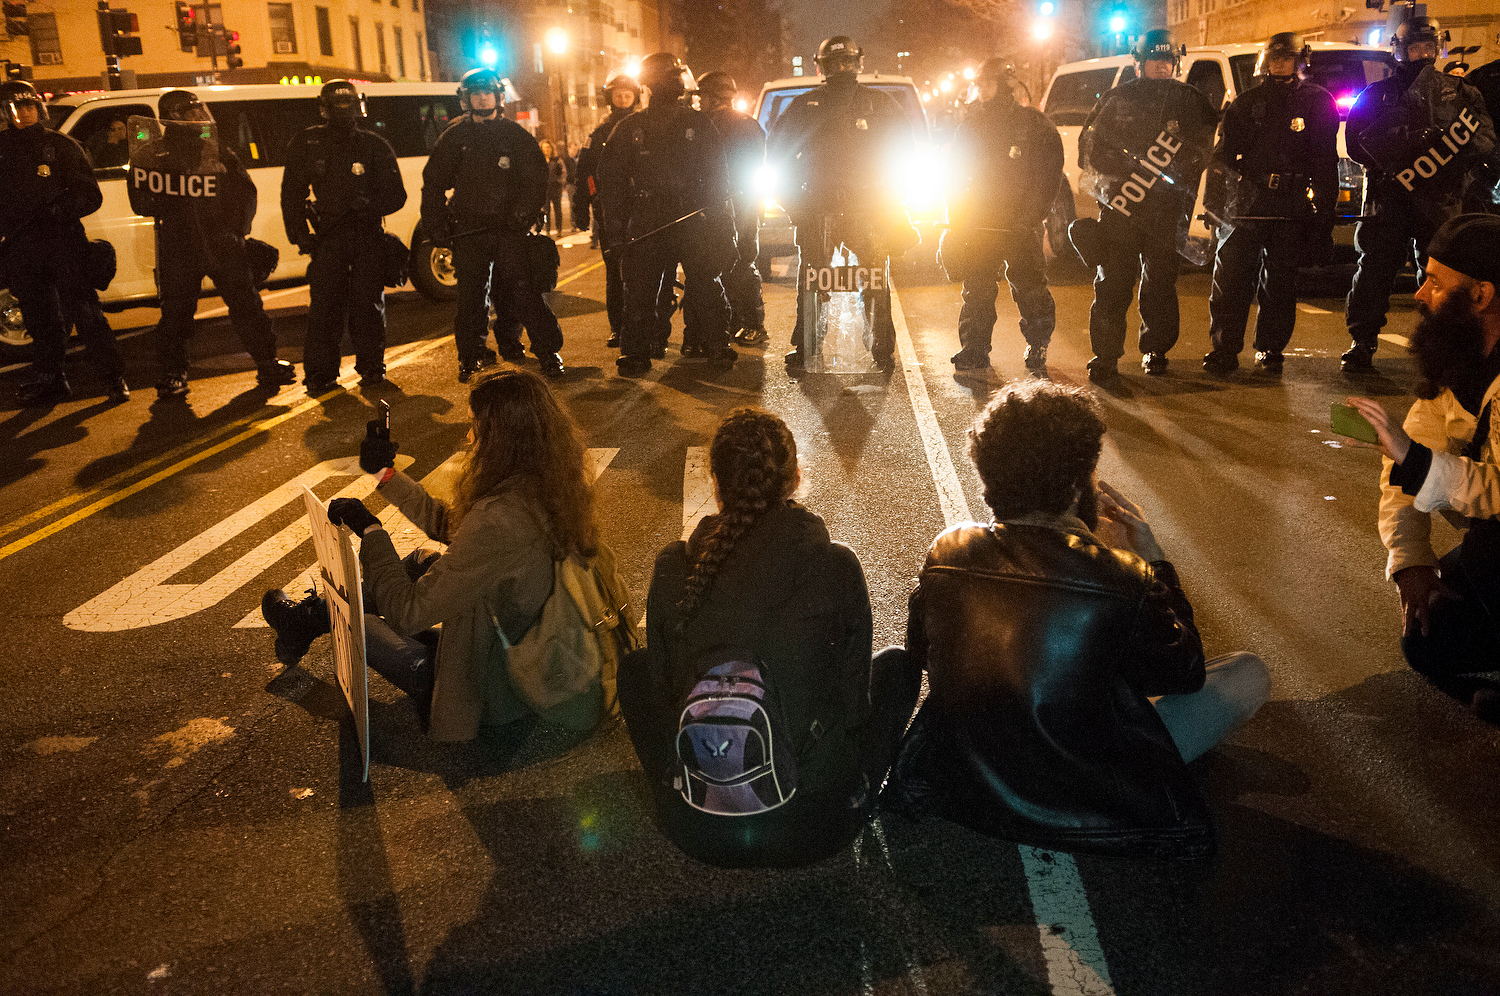 Weary protesters decided to turn the demonstration into a sit-in.